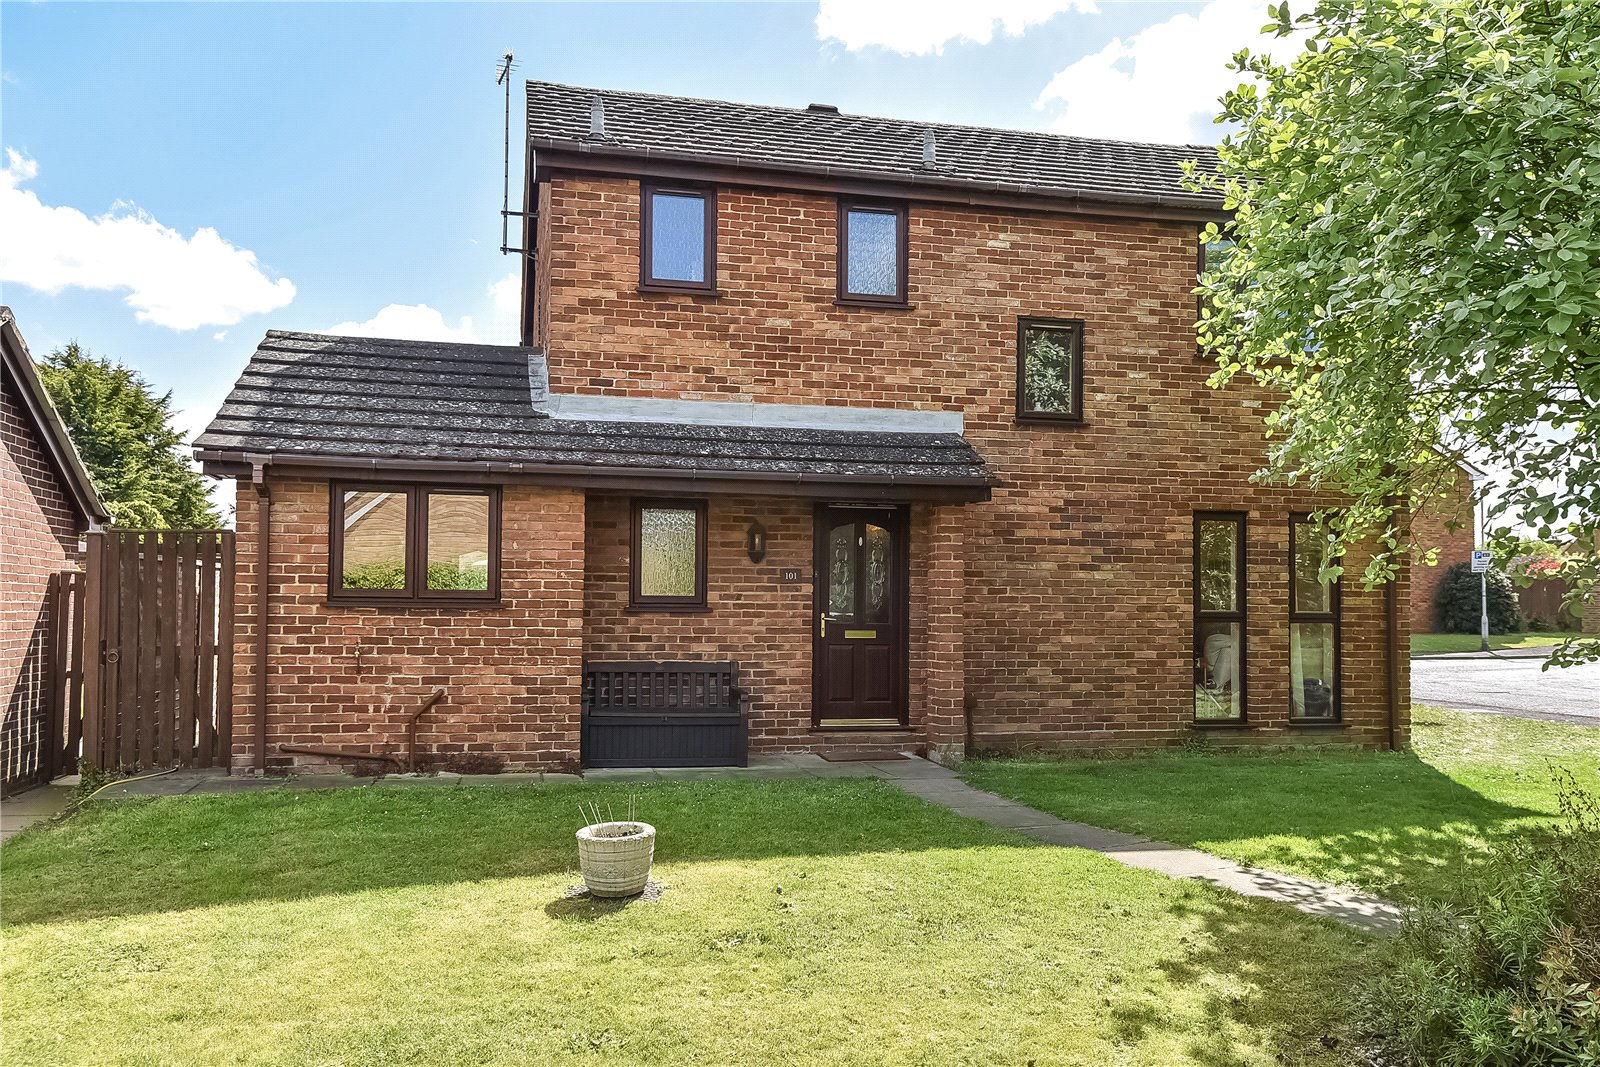 4 Bedrooms House for sale in Tithe Barn Drive, Maidenhead, Berkshire, SL6